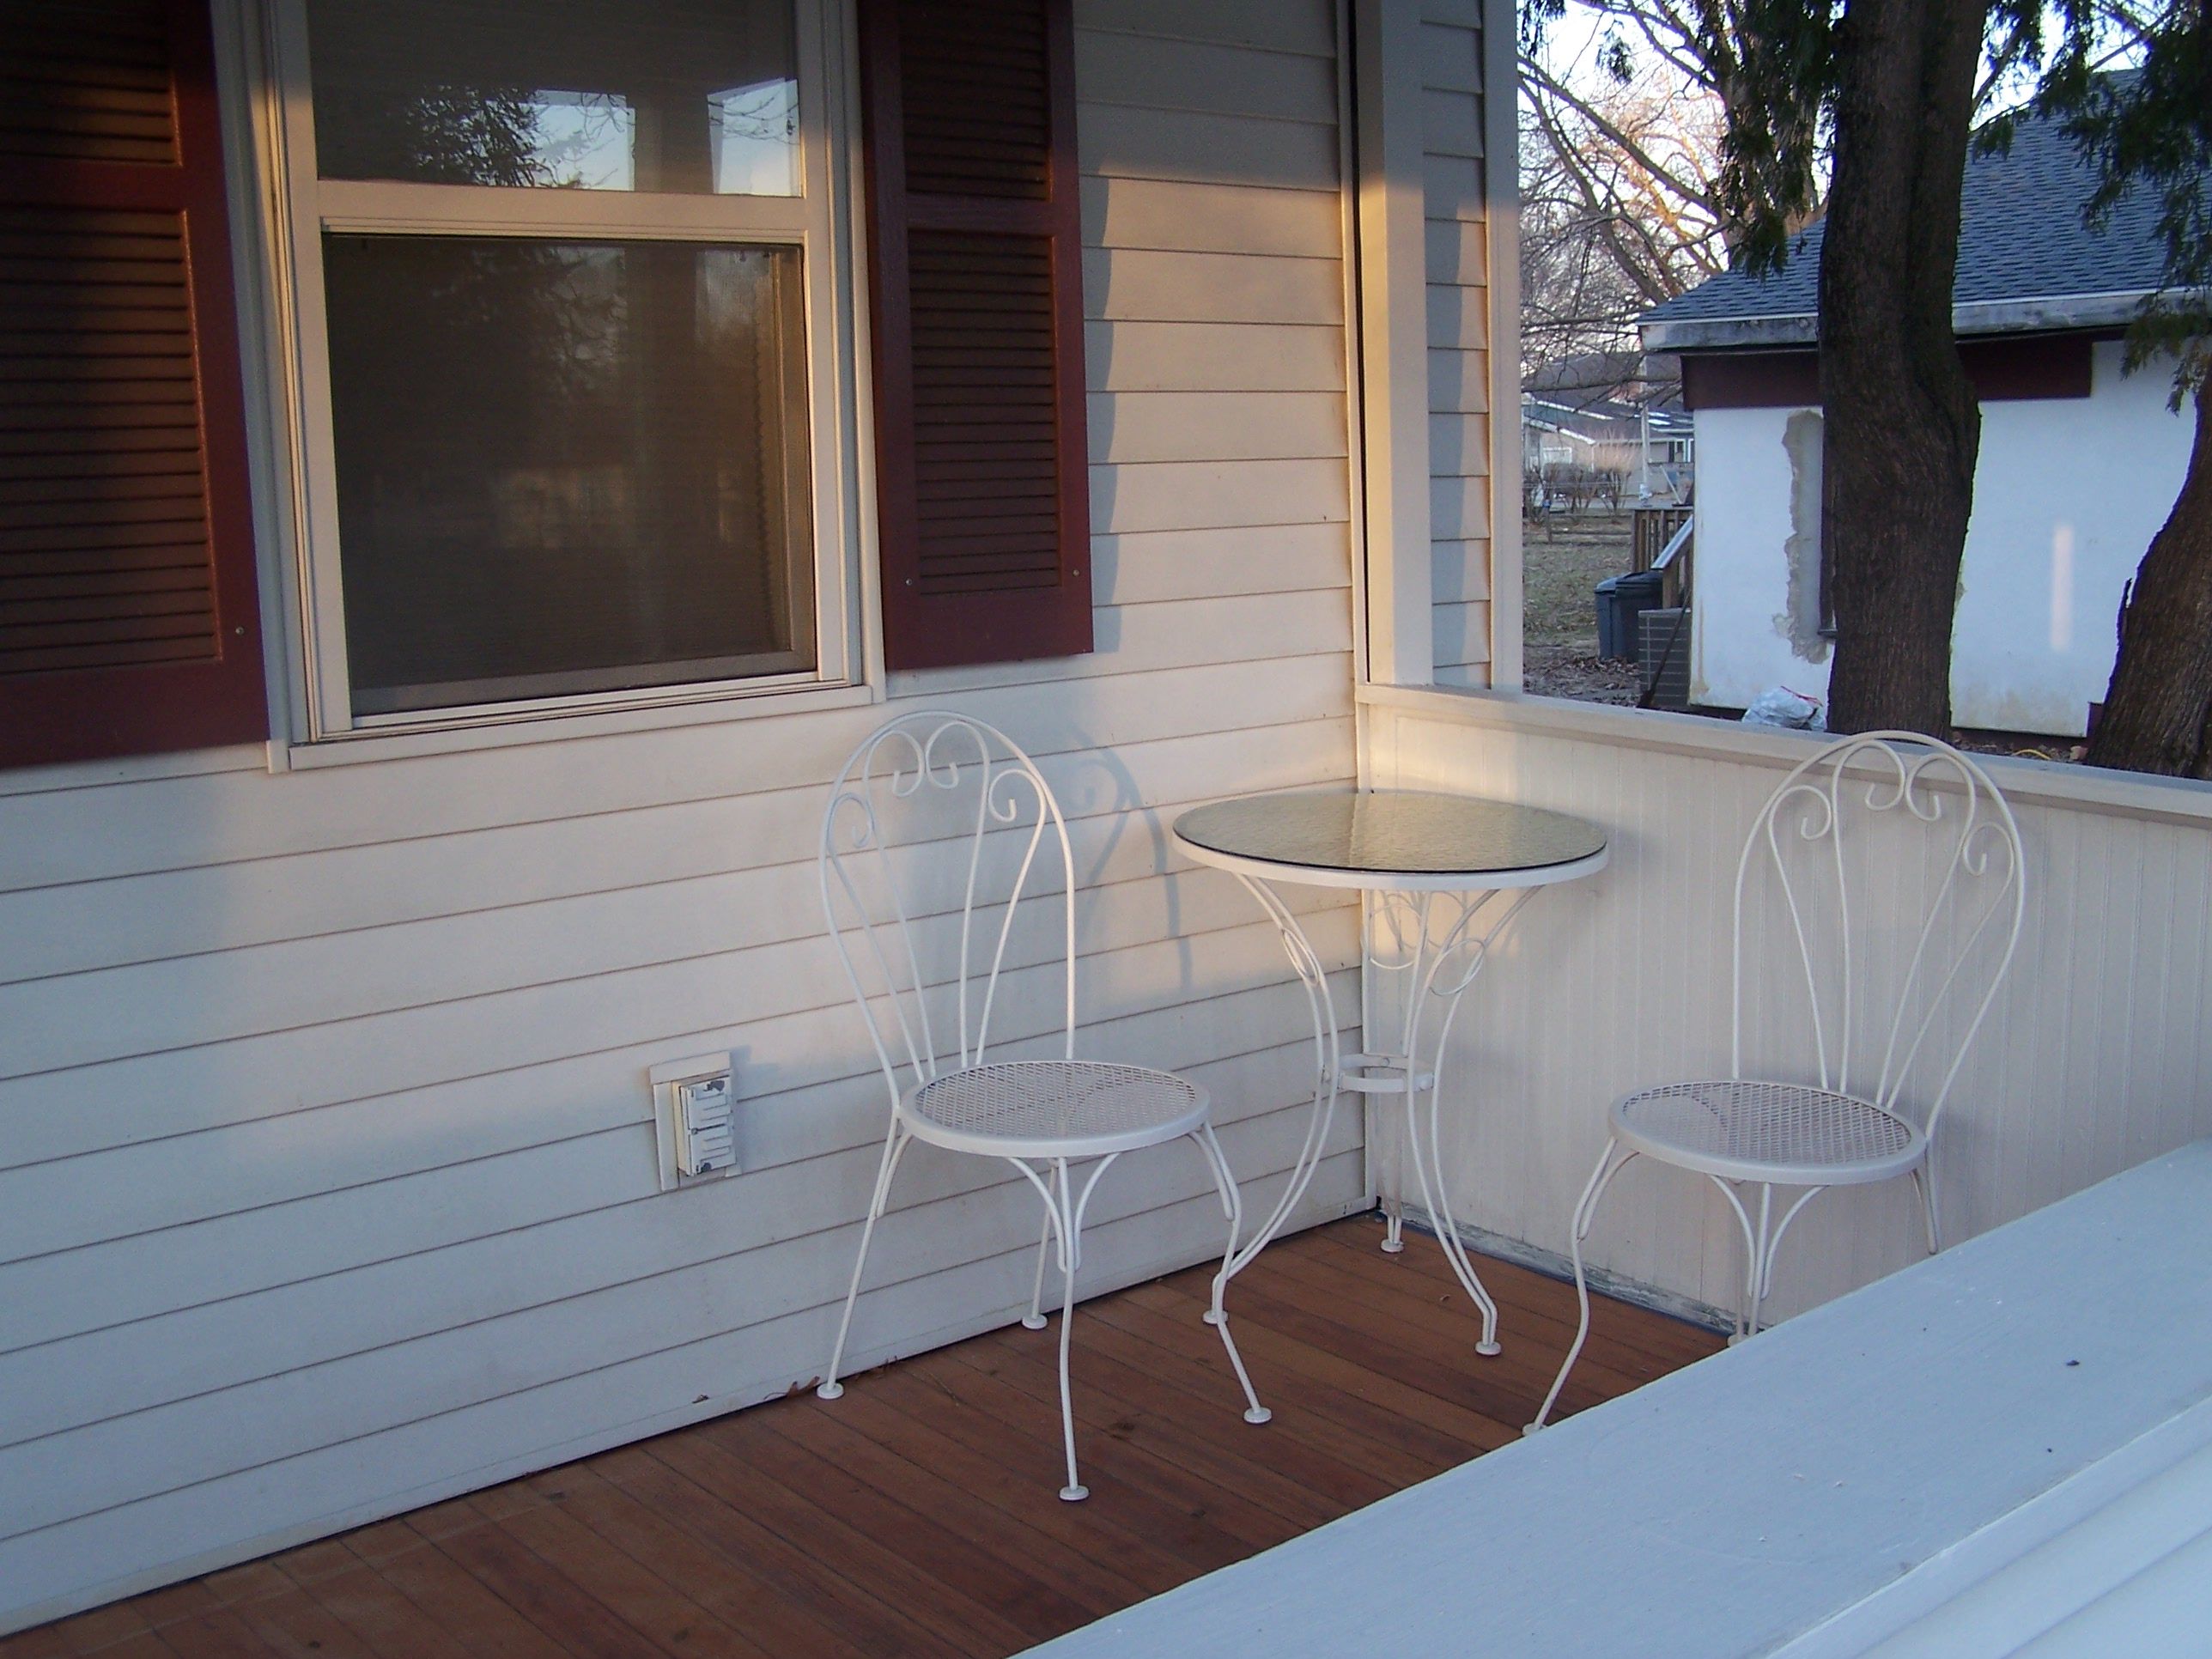 And on the other side- our lovely vintage ice cream table and chairs!